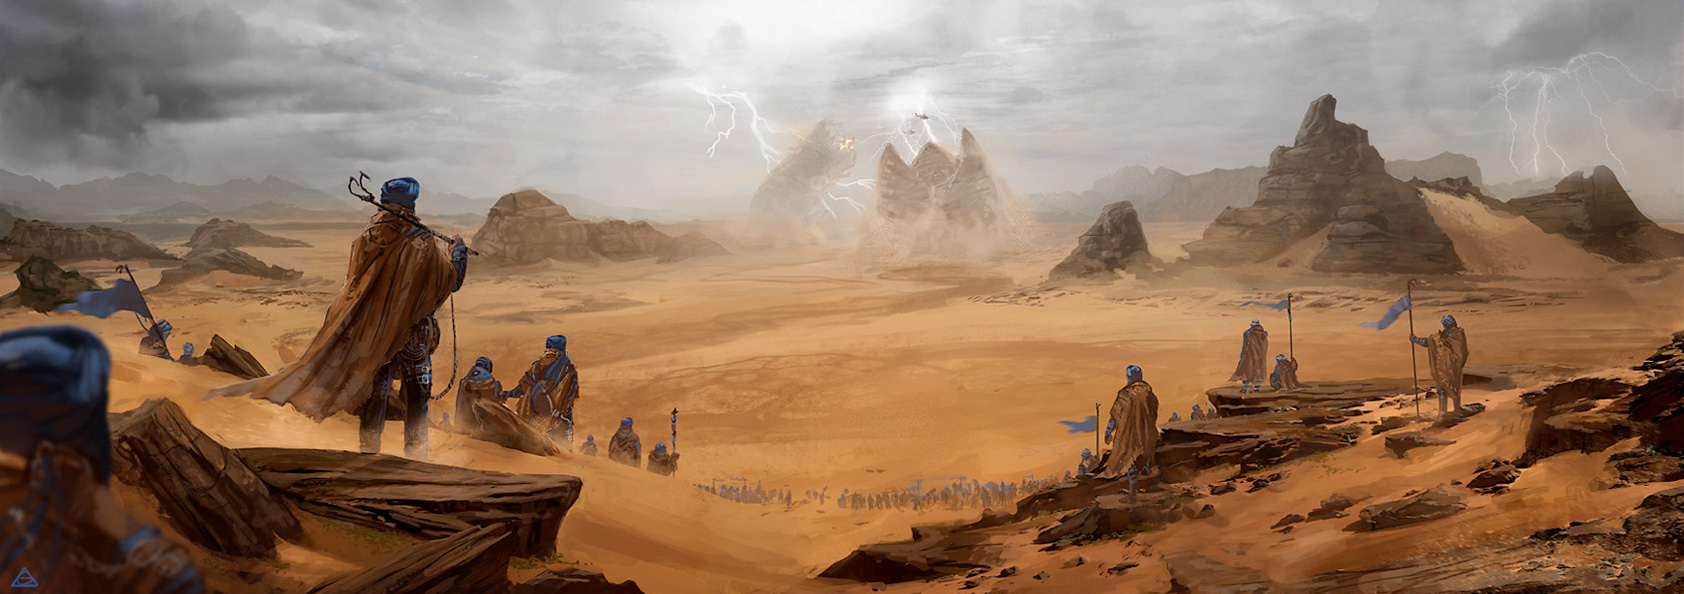 Dune Concept Art and Illustrations I (27 pics)